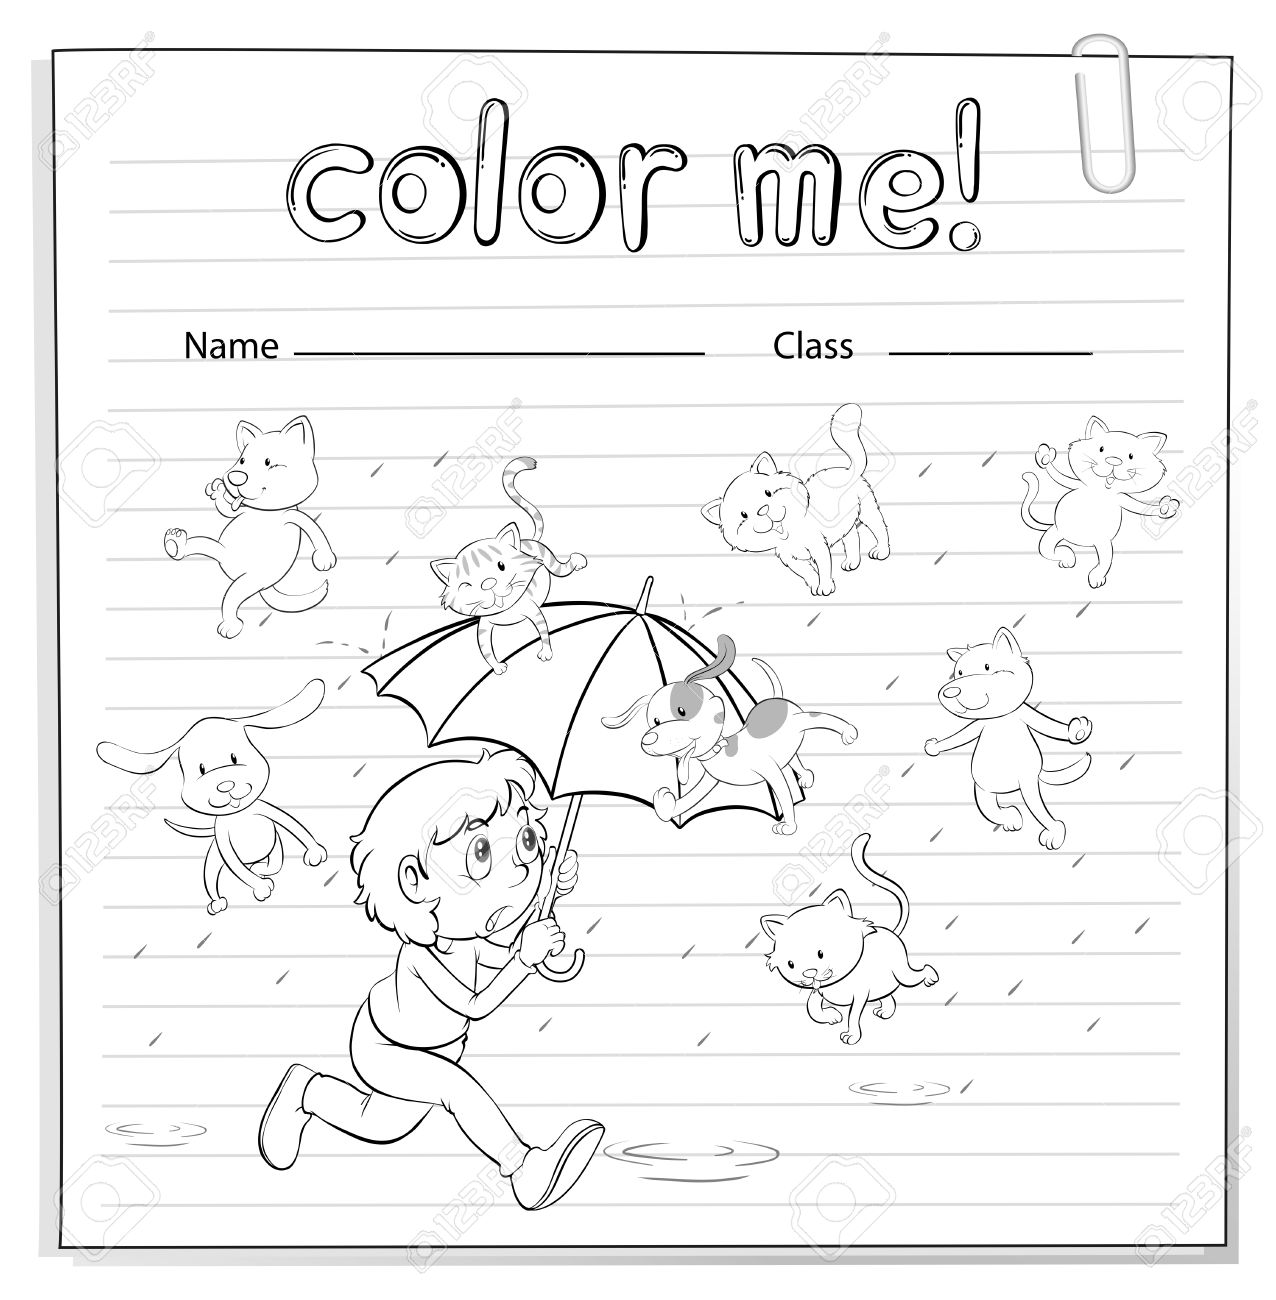 A Worksheet Showing A Rain With Cats And Dogs On A White ...